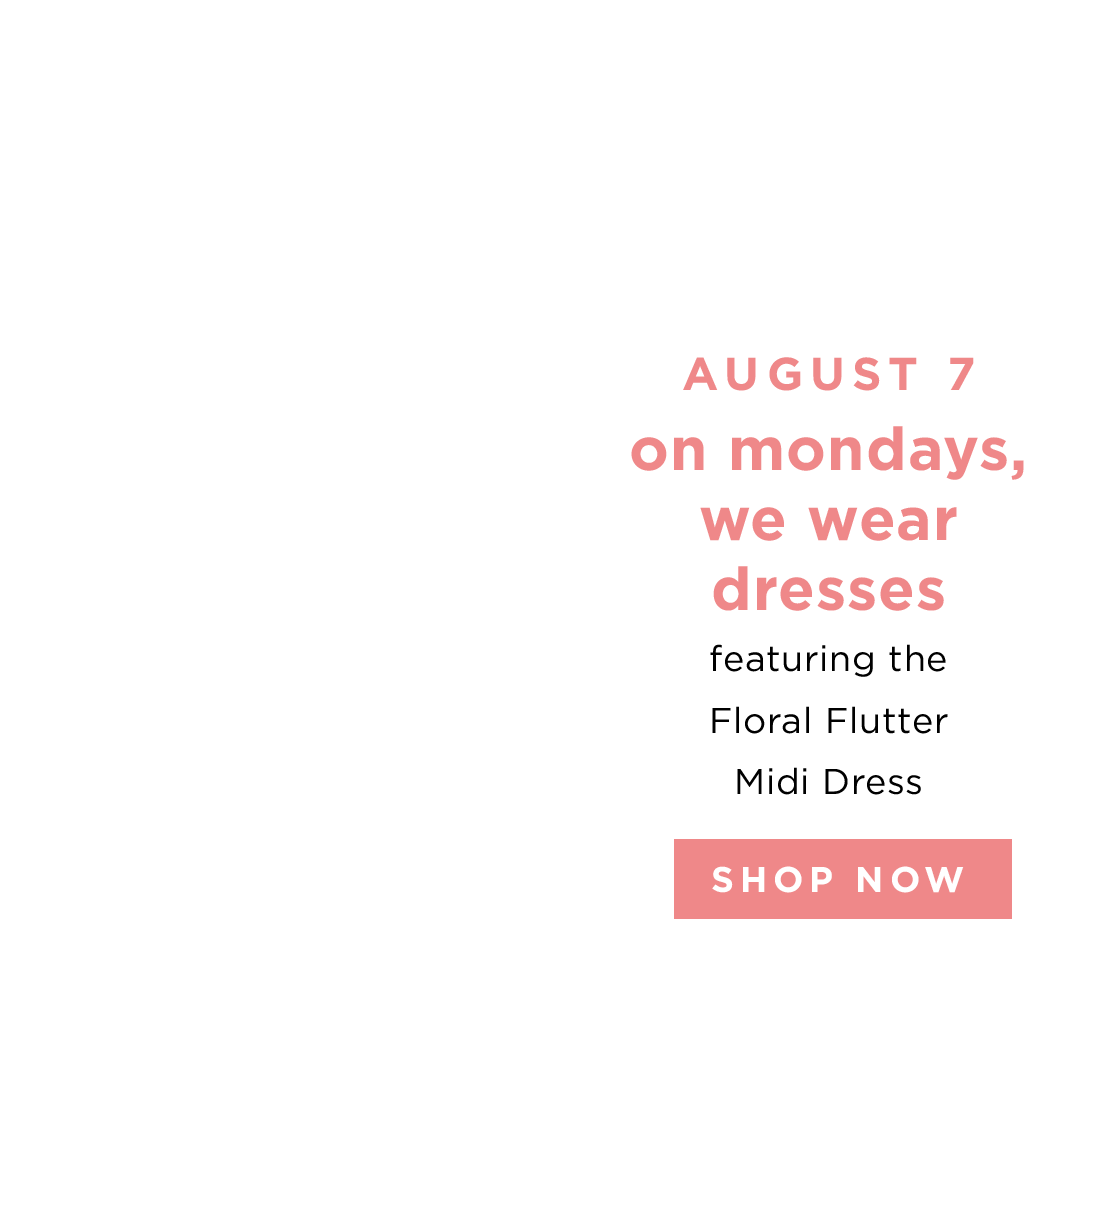 AUGUST 7 - SHOP NOW